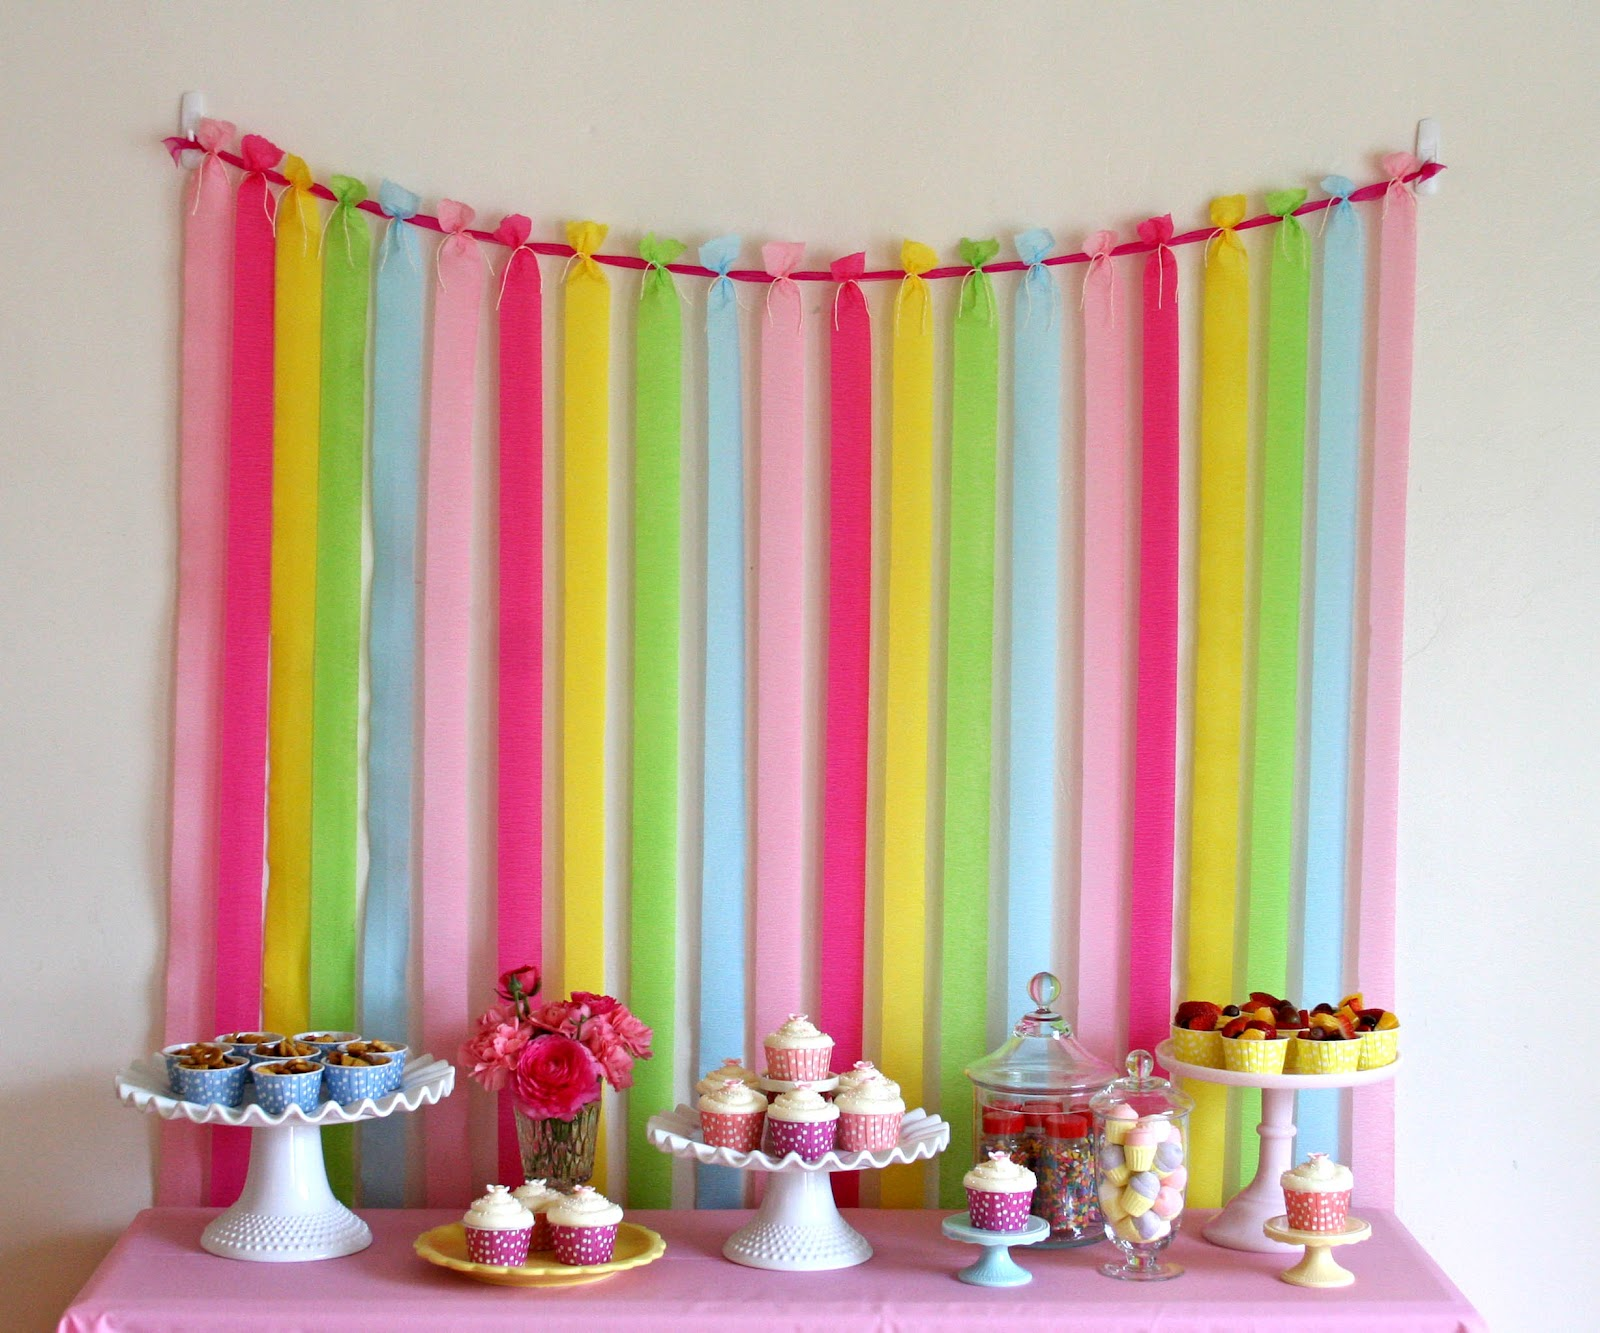 To Keep The Crepe Paper From Moving Too Much I Also Taped End Of Each Strip Wall Just Below Table Height